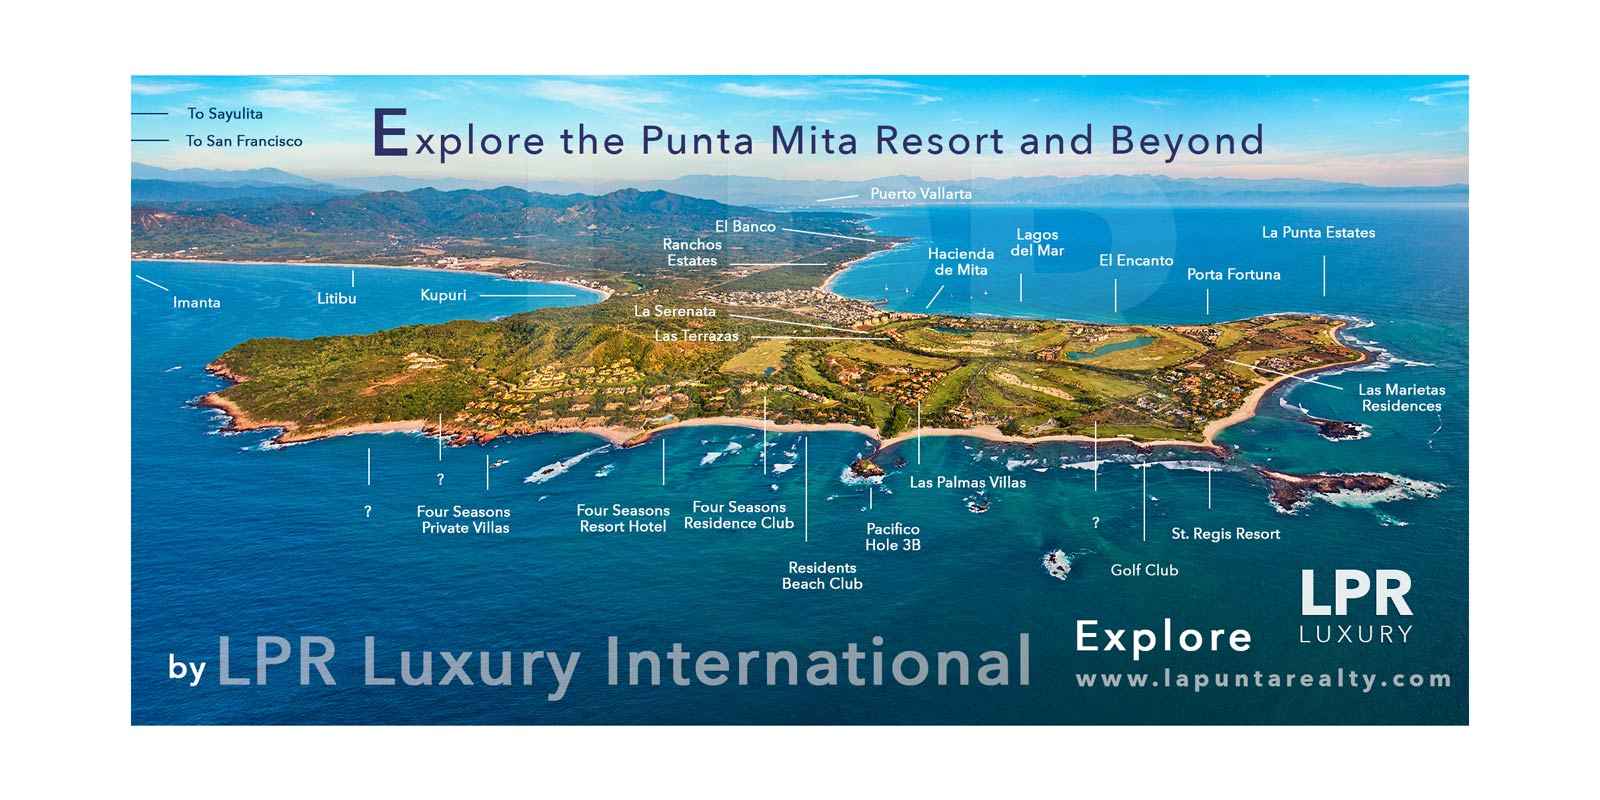 Map of Punta Mita - Aerial Photo Map of the Punta Mita Resort, Mexico